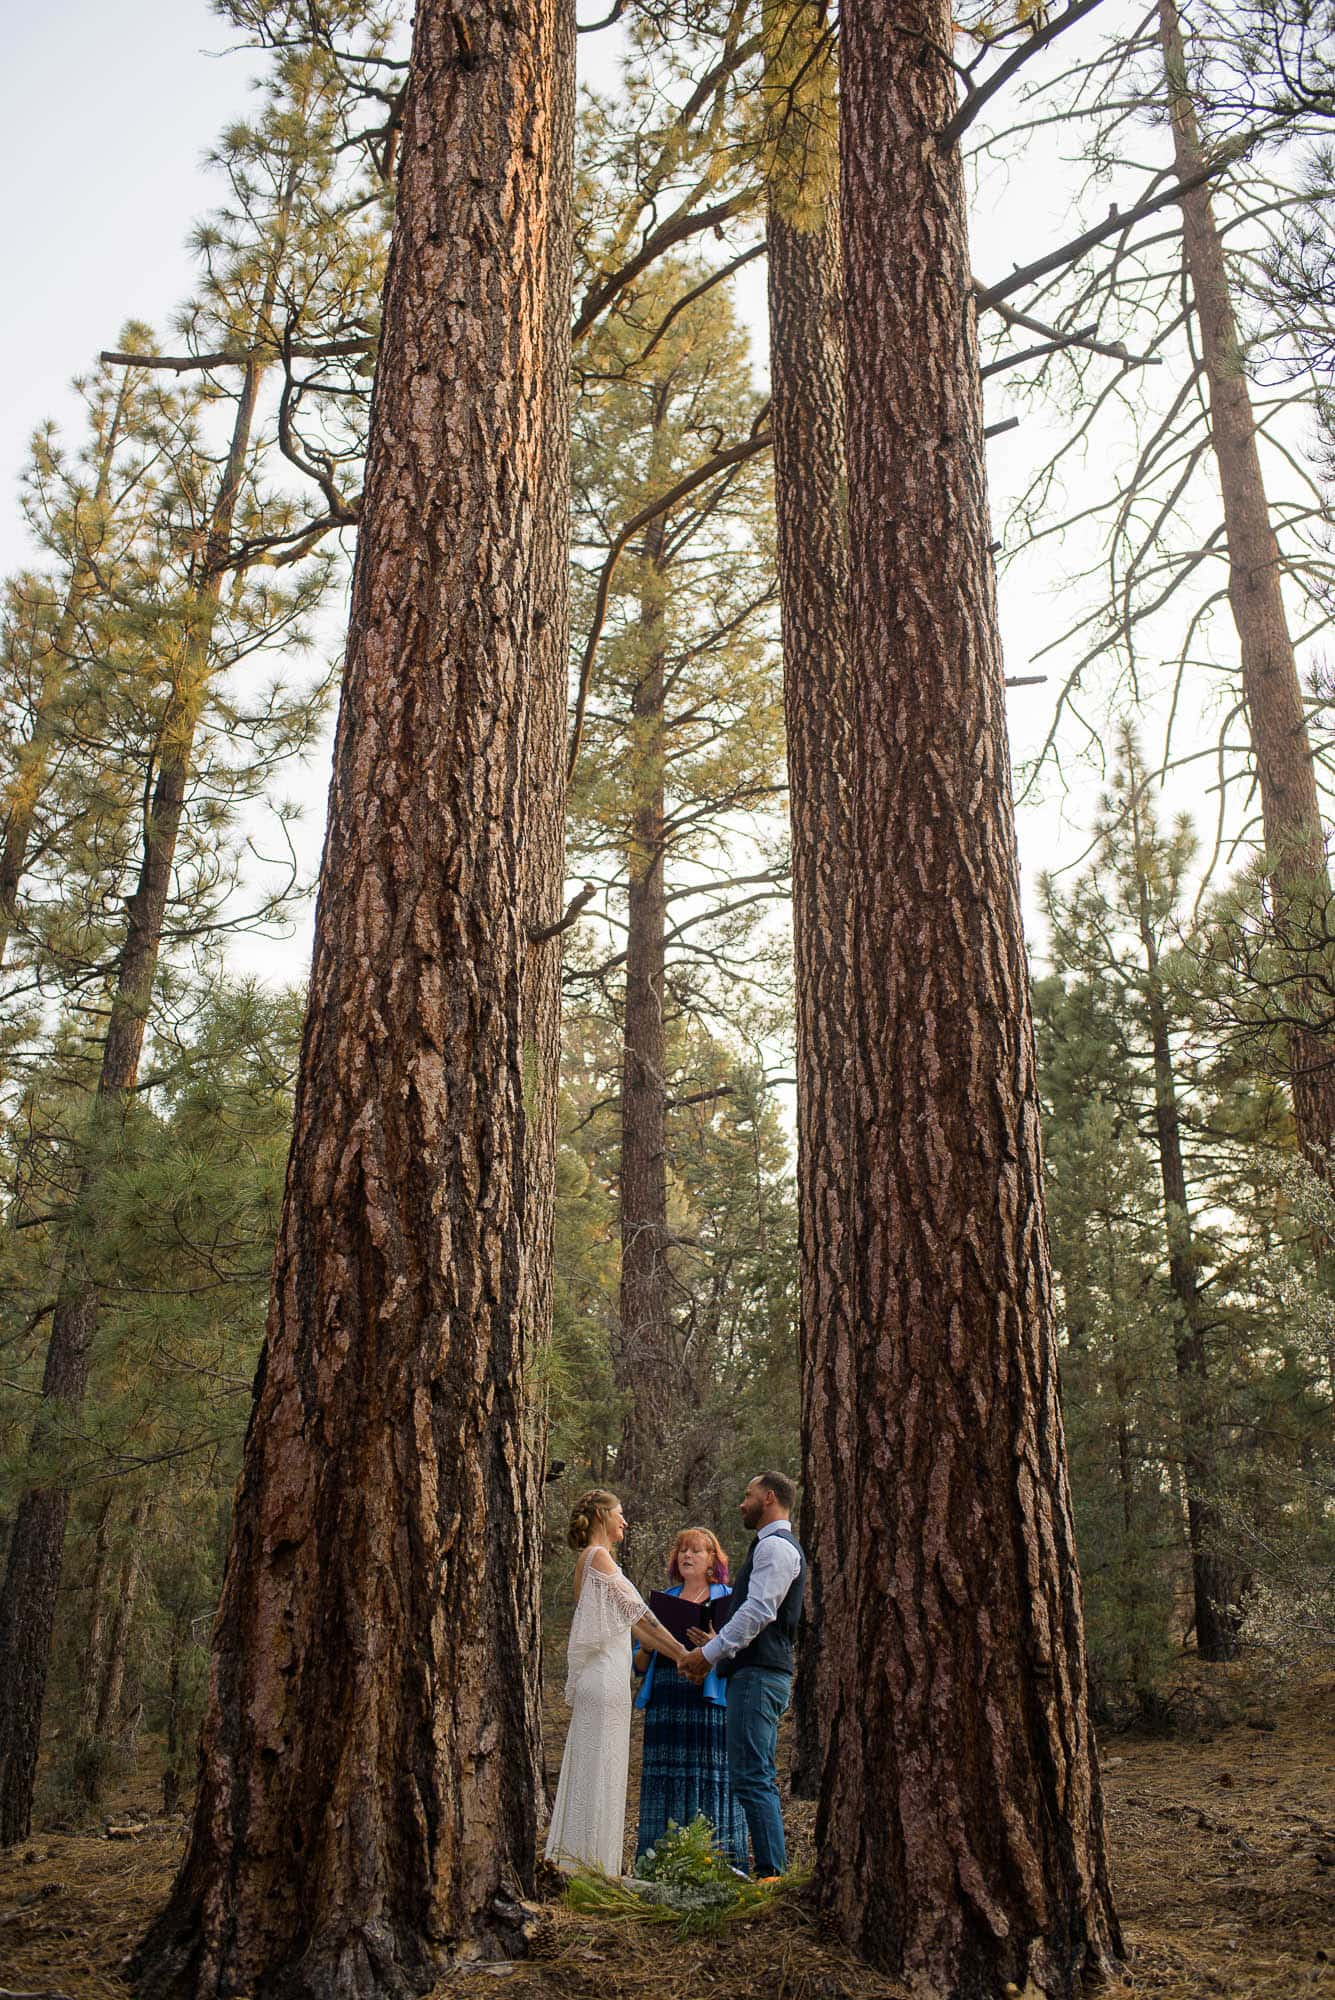 021_Alan_and_Heidi_Big_Bear_Elopement_Holly_Sean